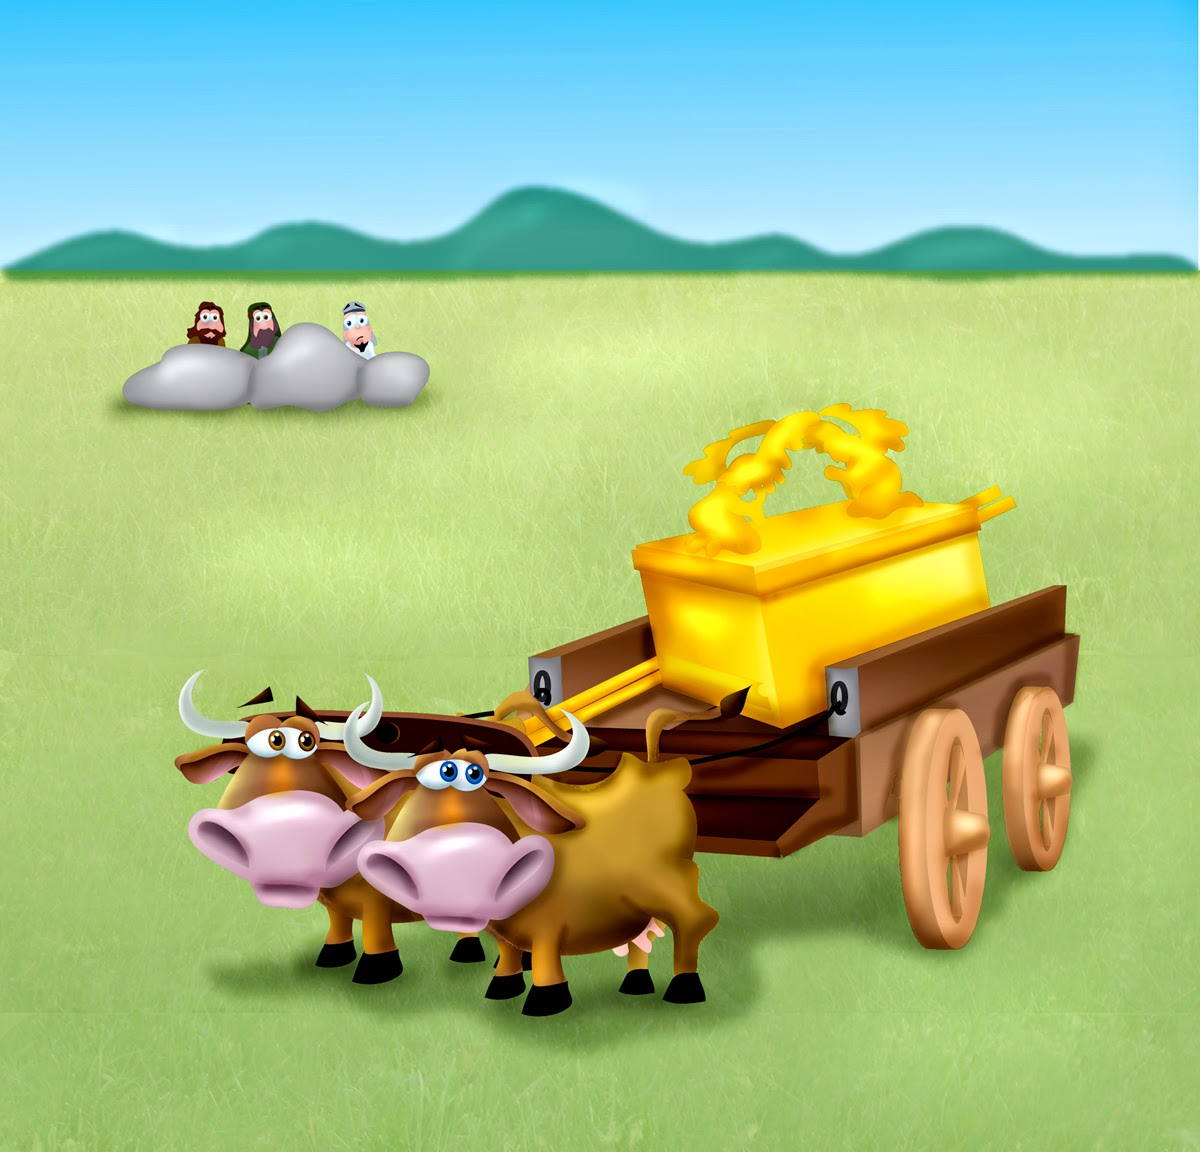 Coloring picture of the ark of covenant - When The Israelites Saw The Ark Of The Covenant Of The Lord Returning On A Cart Being Pulled By Two Cows They Were Overjoyed The Cows Stopped At A Large